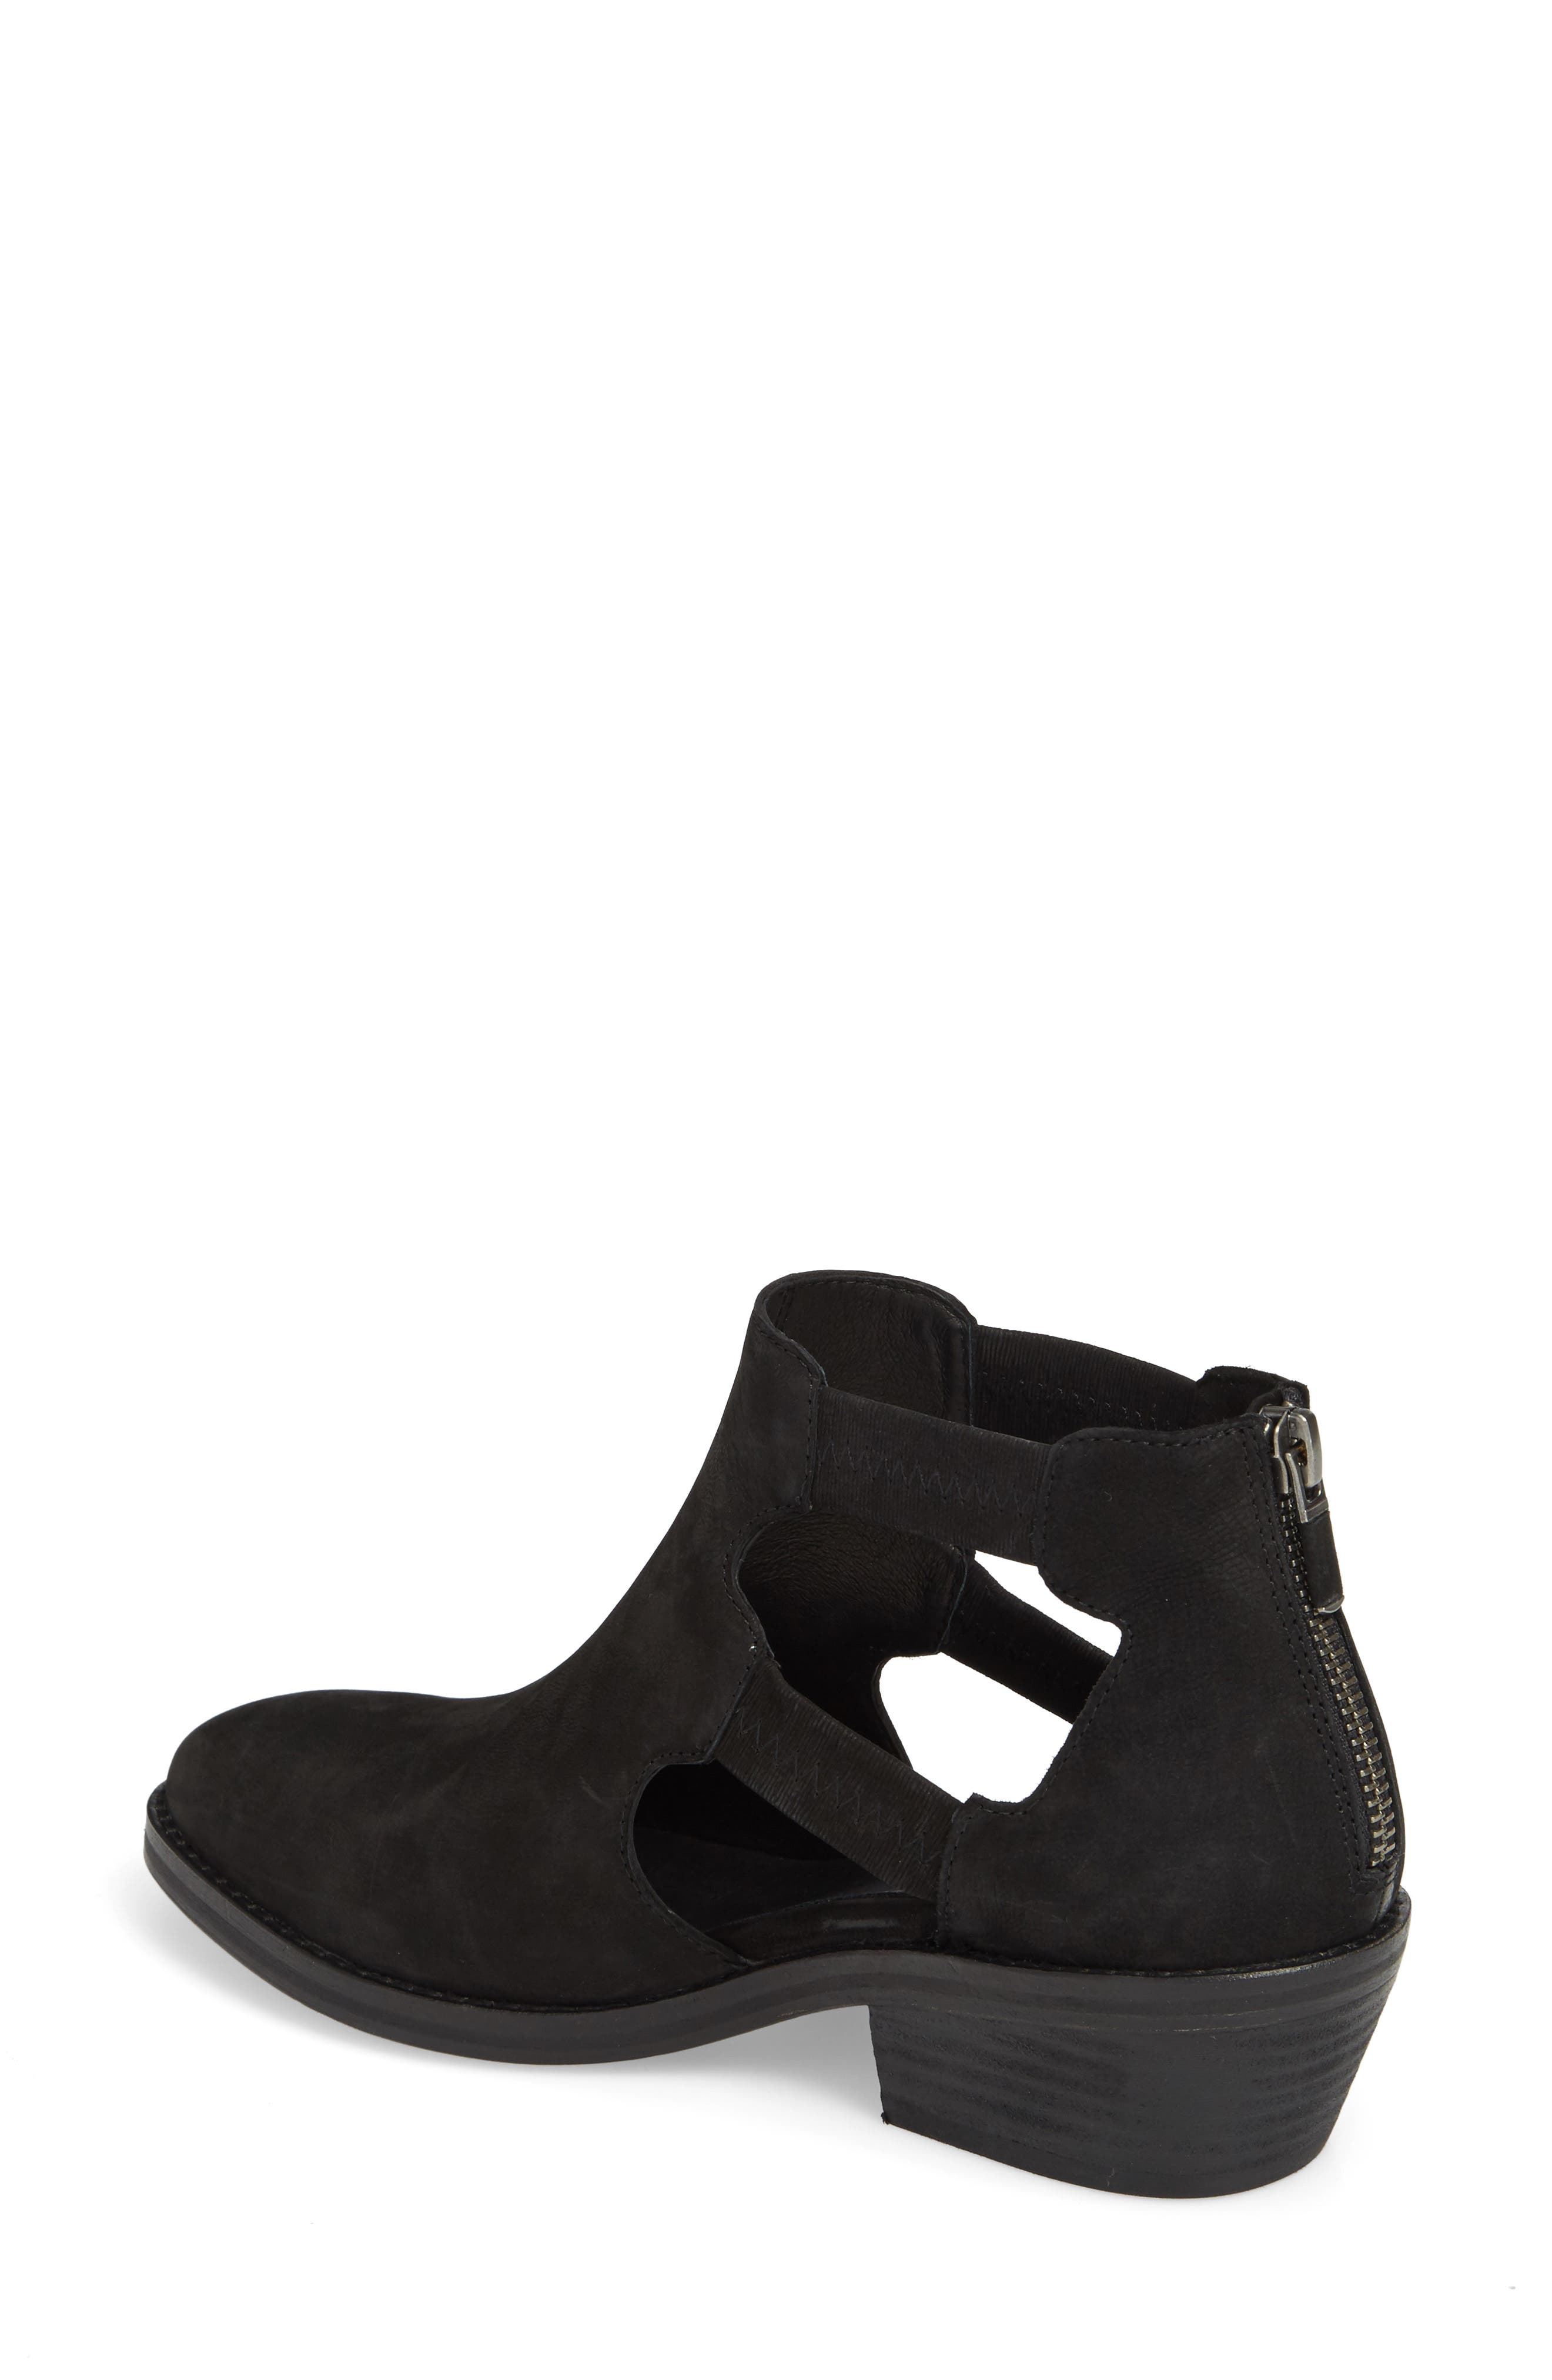 Vanda Cutout Bootie,                             Alternate thumbnail 2, color,                             001